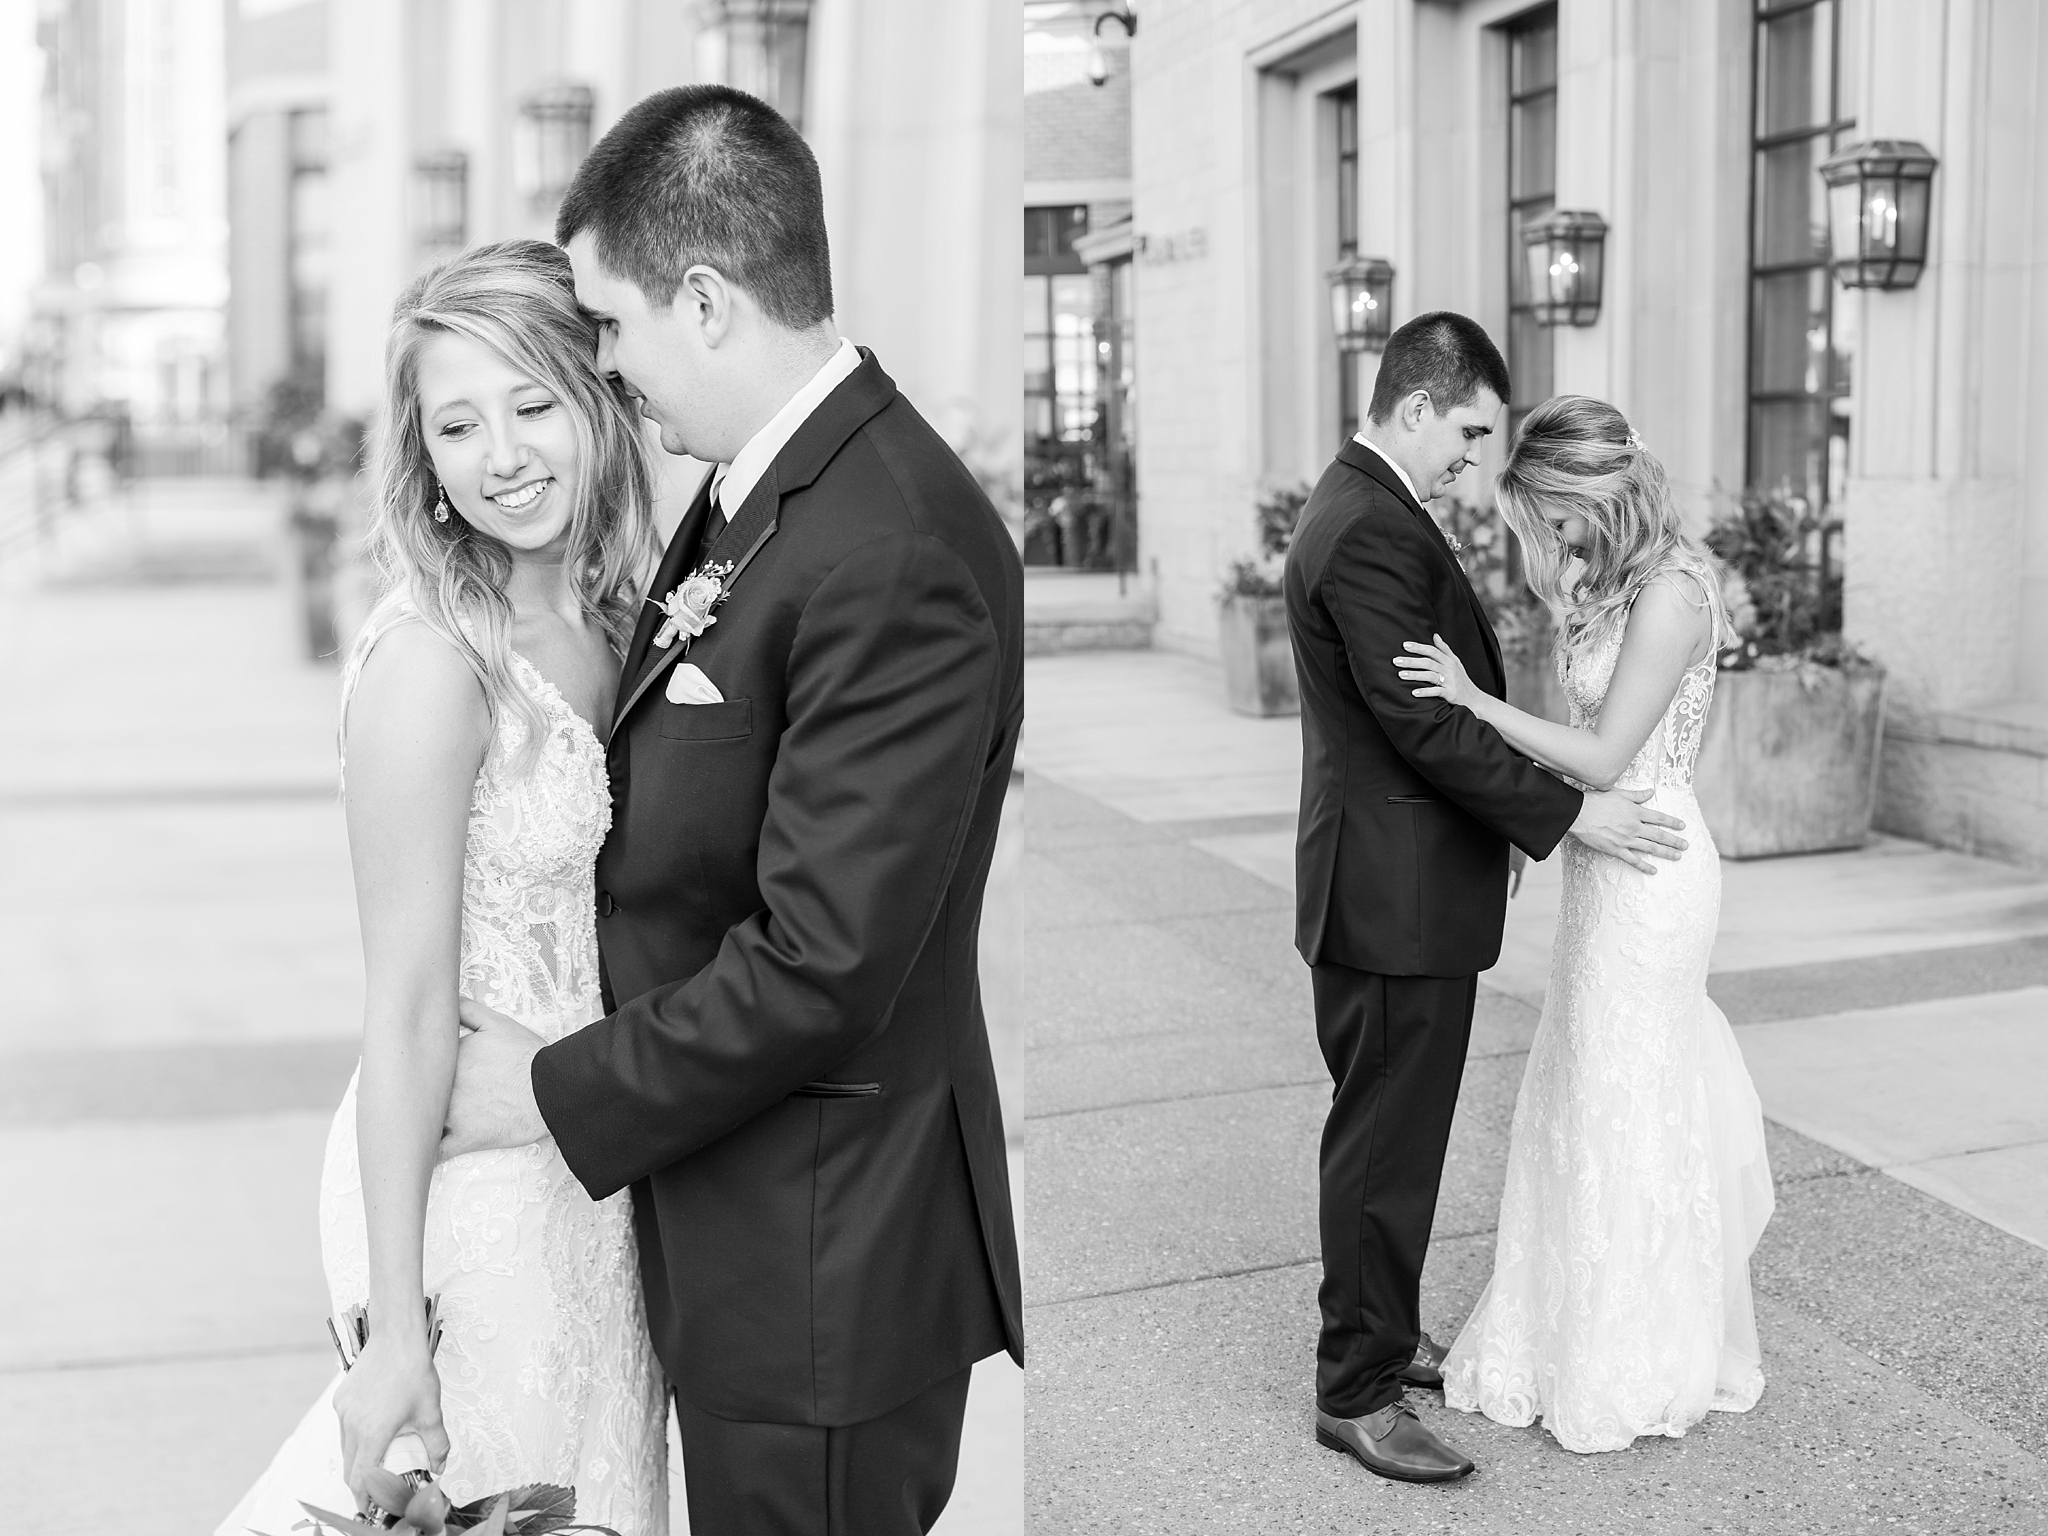 candid-romantic-wedding-photos-at-the-h-hotel-in-midland-michigan-by-courtney-carolyn-photography_0101.jpg